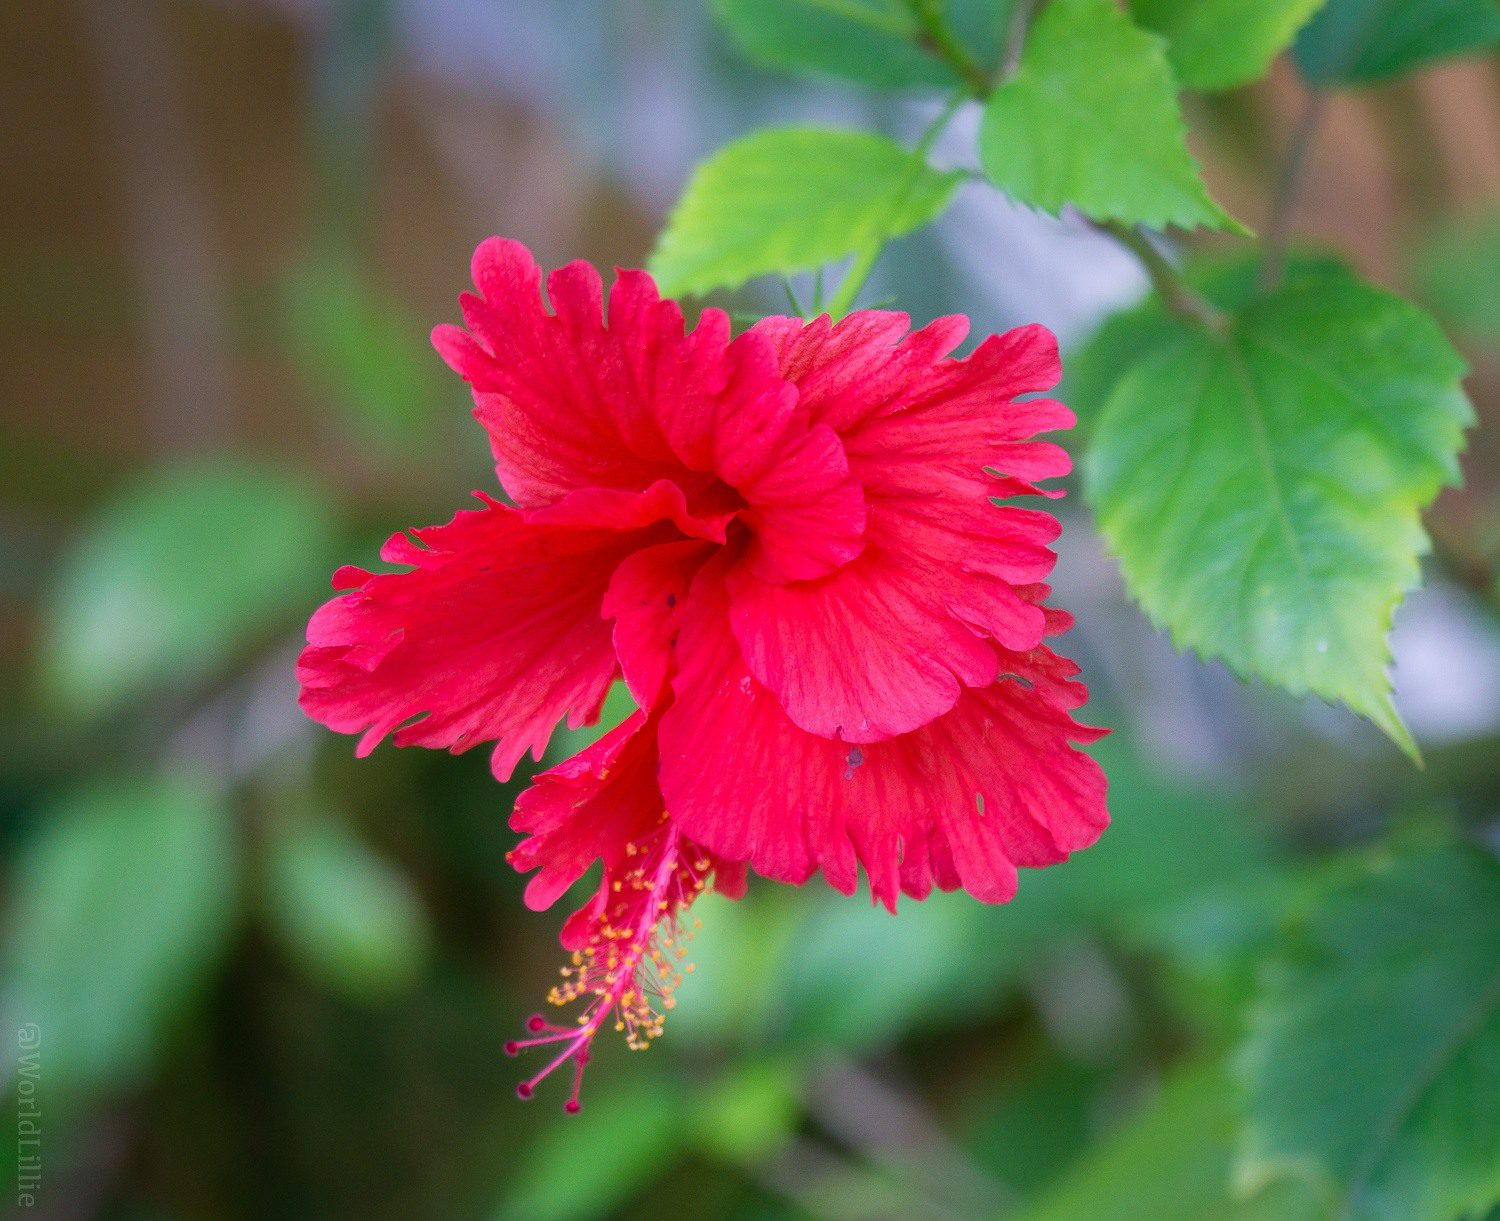 A solo flower, happy and frilly in red.